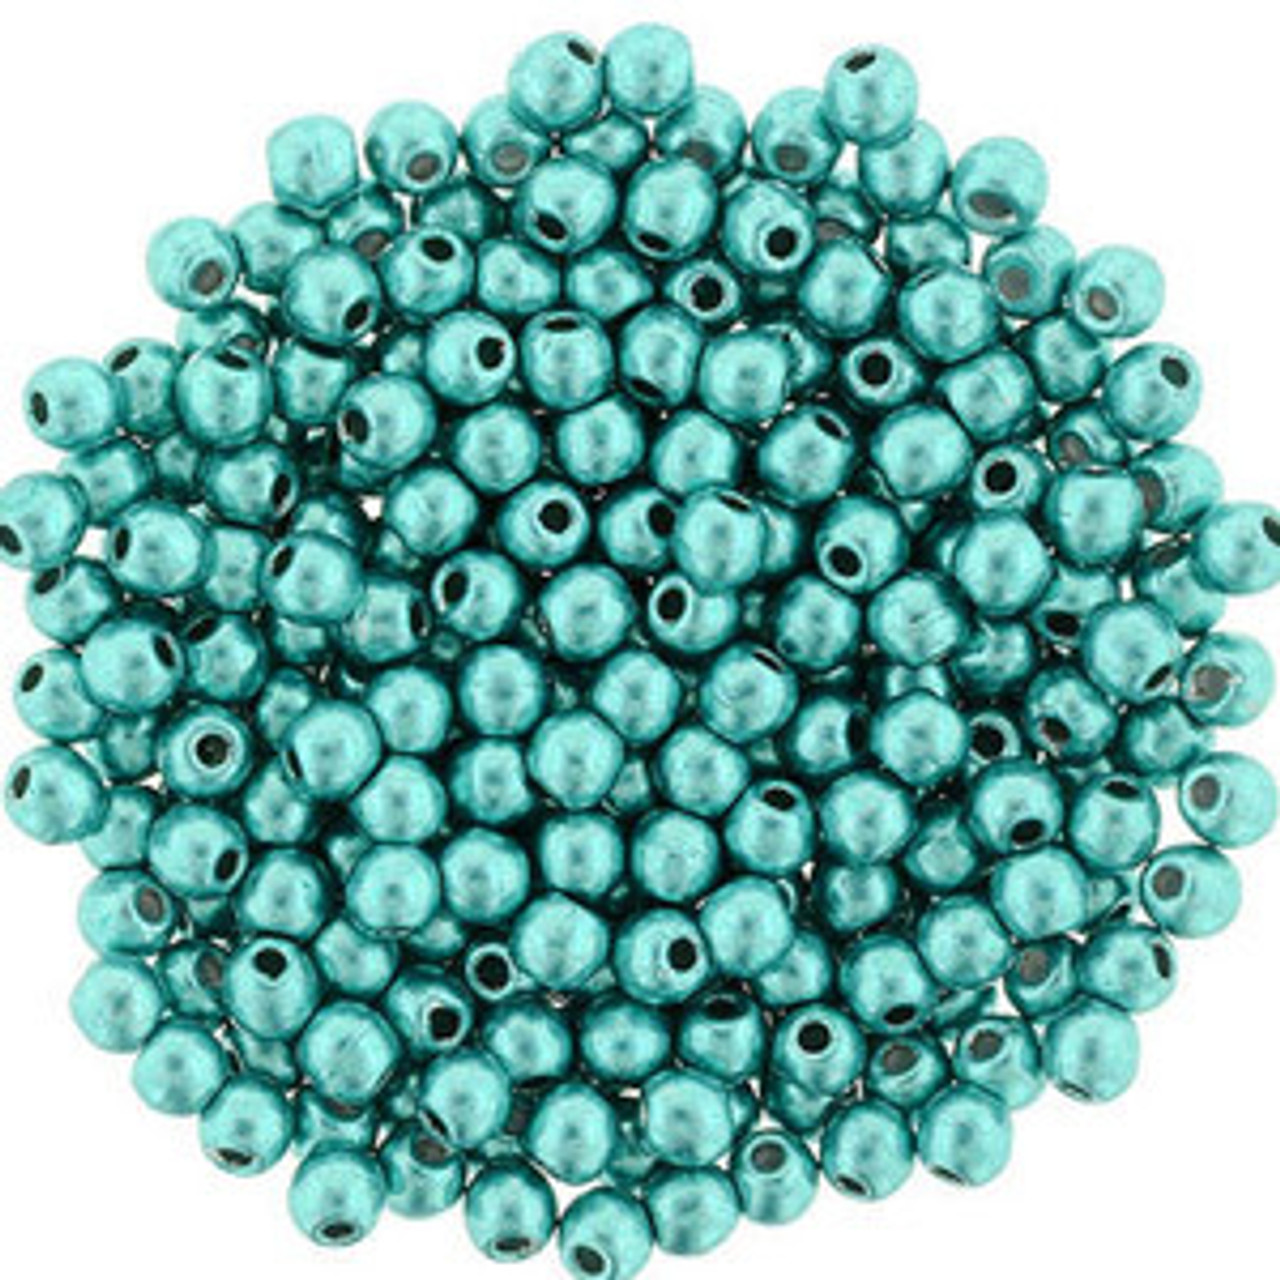 2mm Round Glass Beads (Druks)